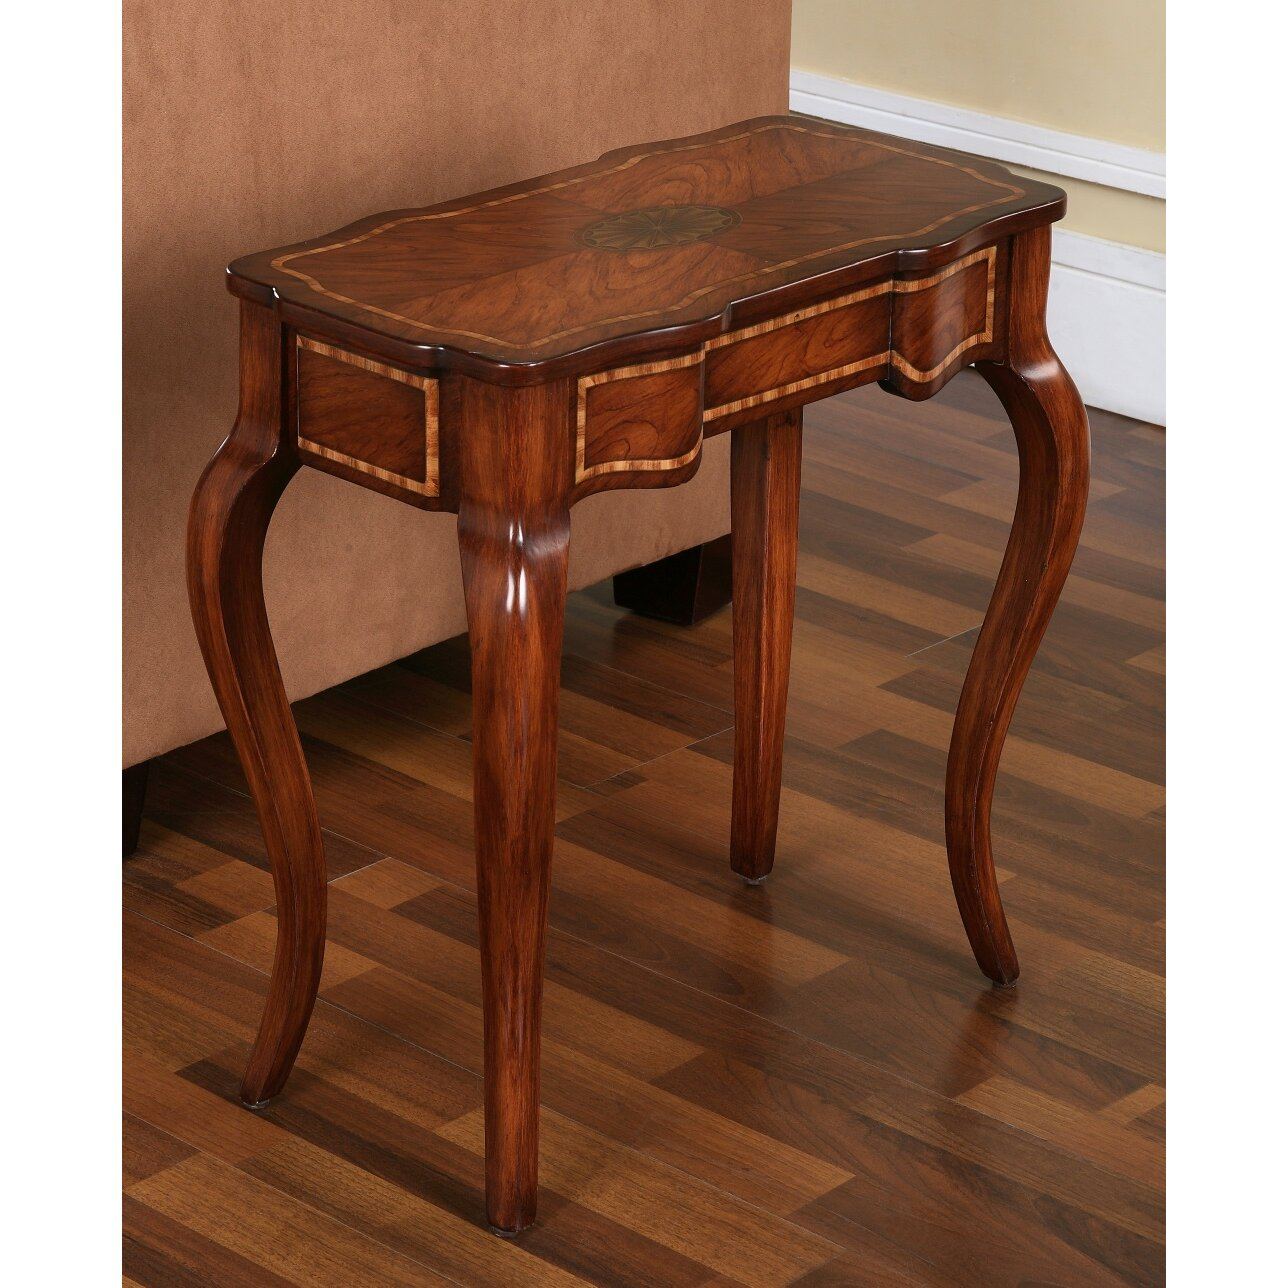 Accent treasures end table reviews wayfair for Accent end tables